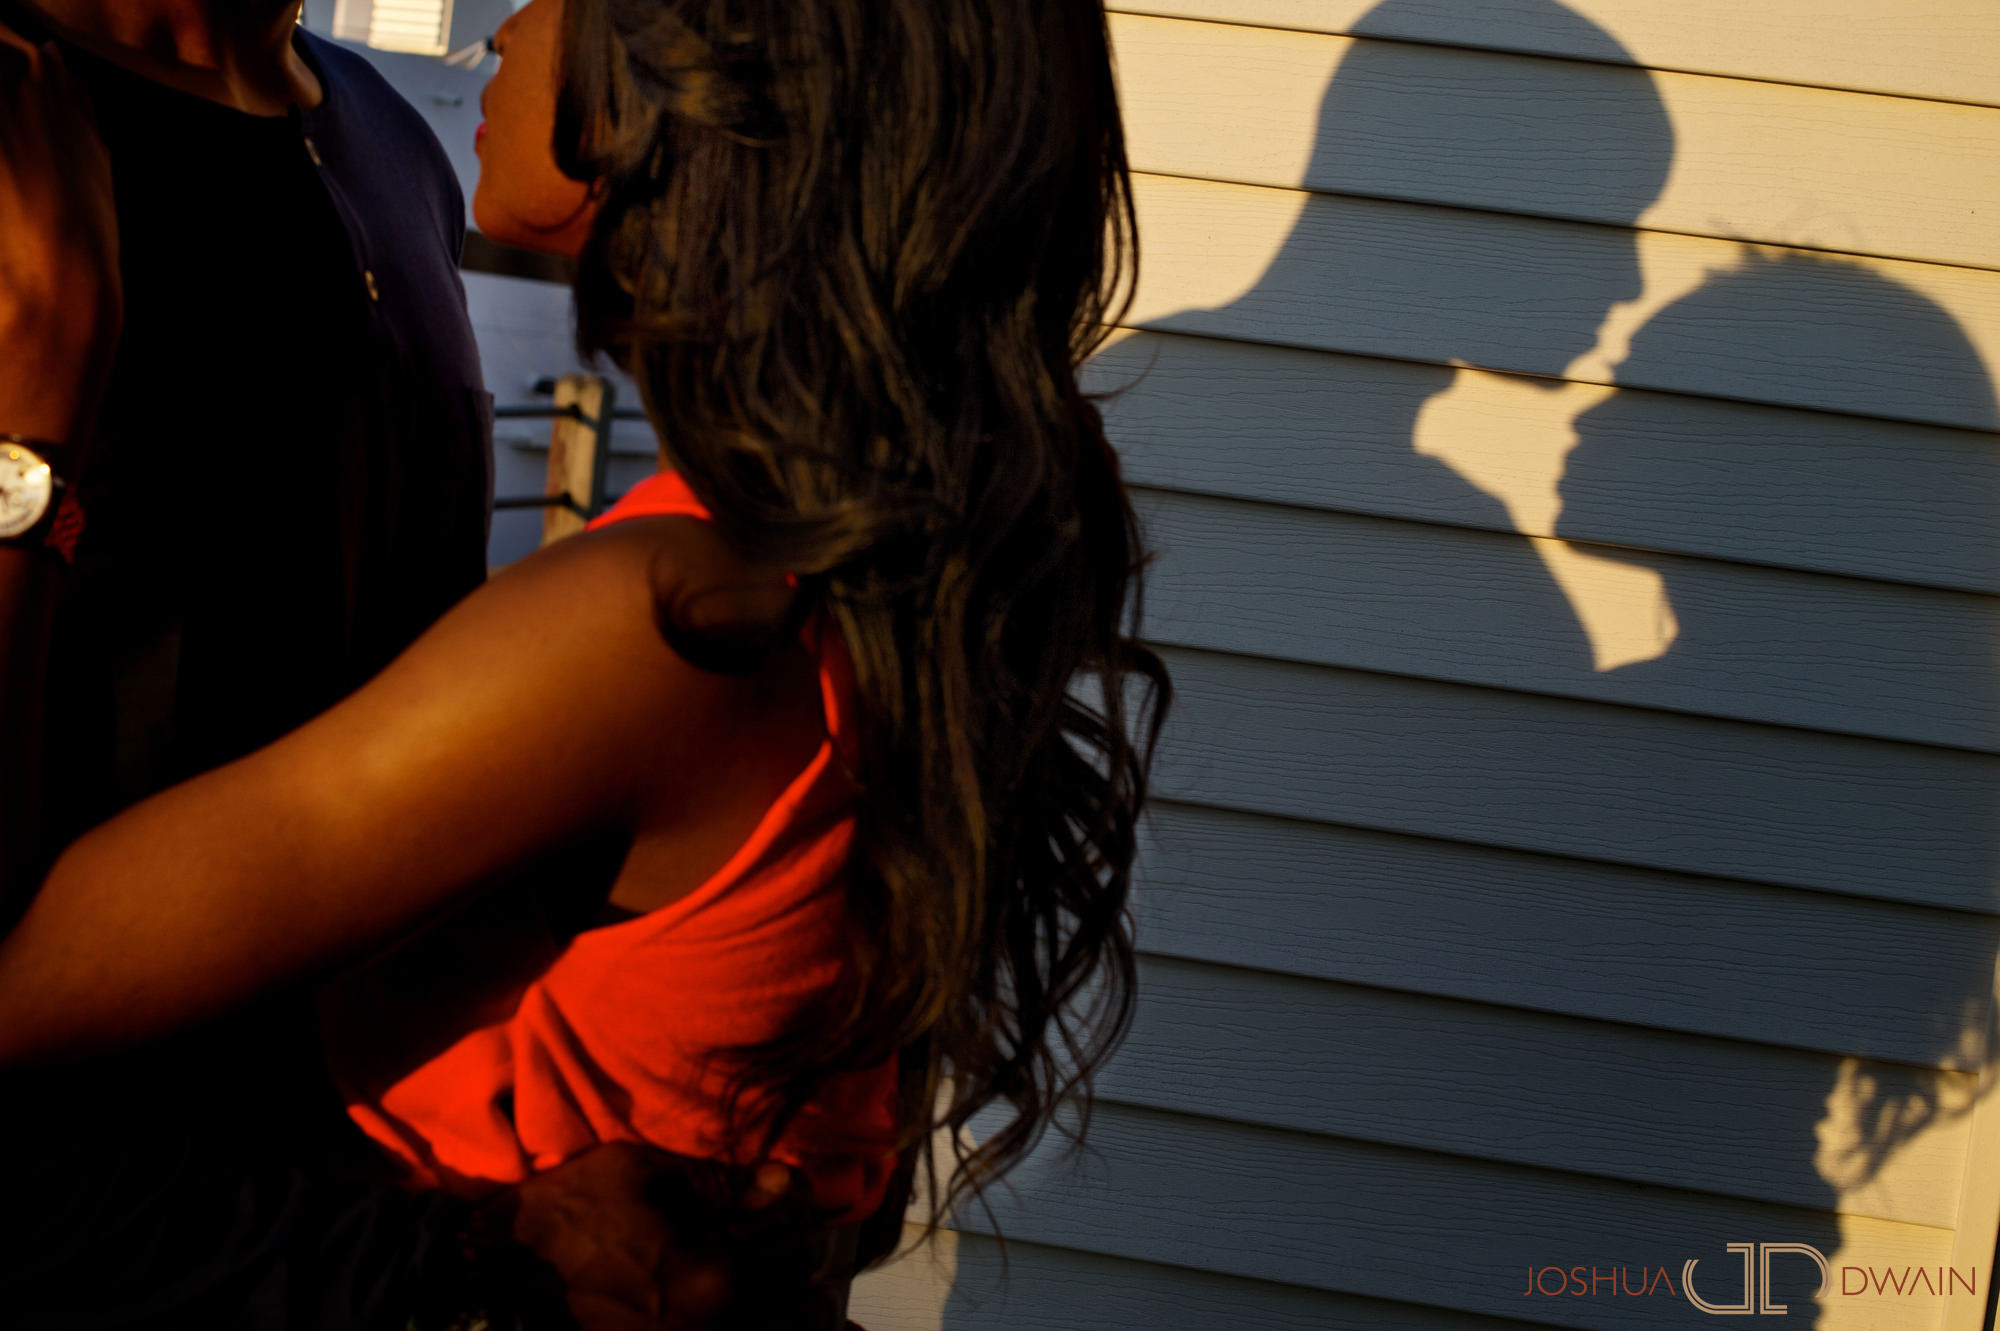 nkechi-curtis-009-liberty-state-park-new-jersey-engagement-photographer-joshua-dwain-2013-06-16_NC_071